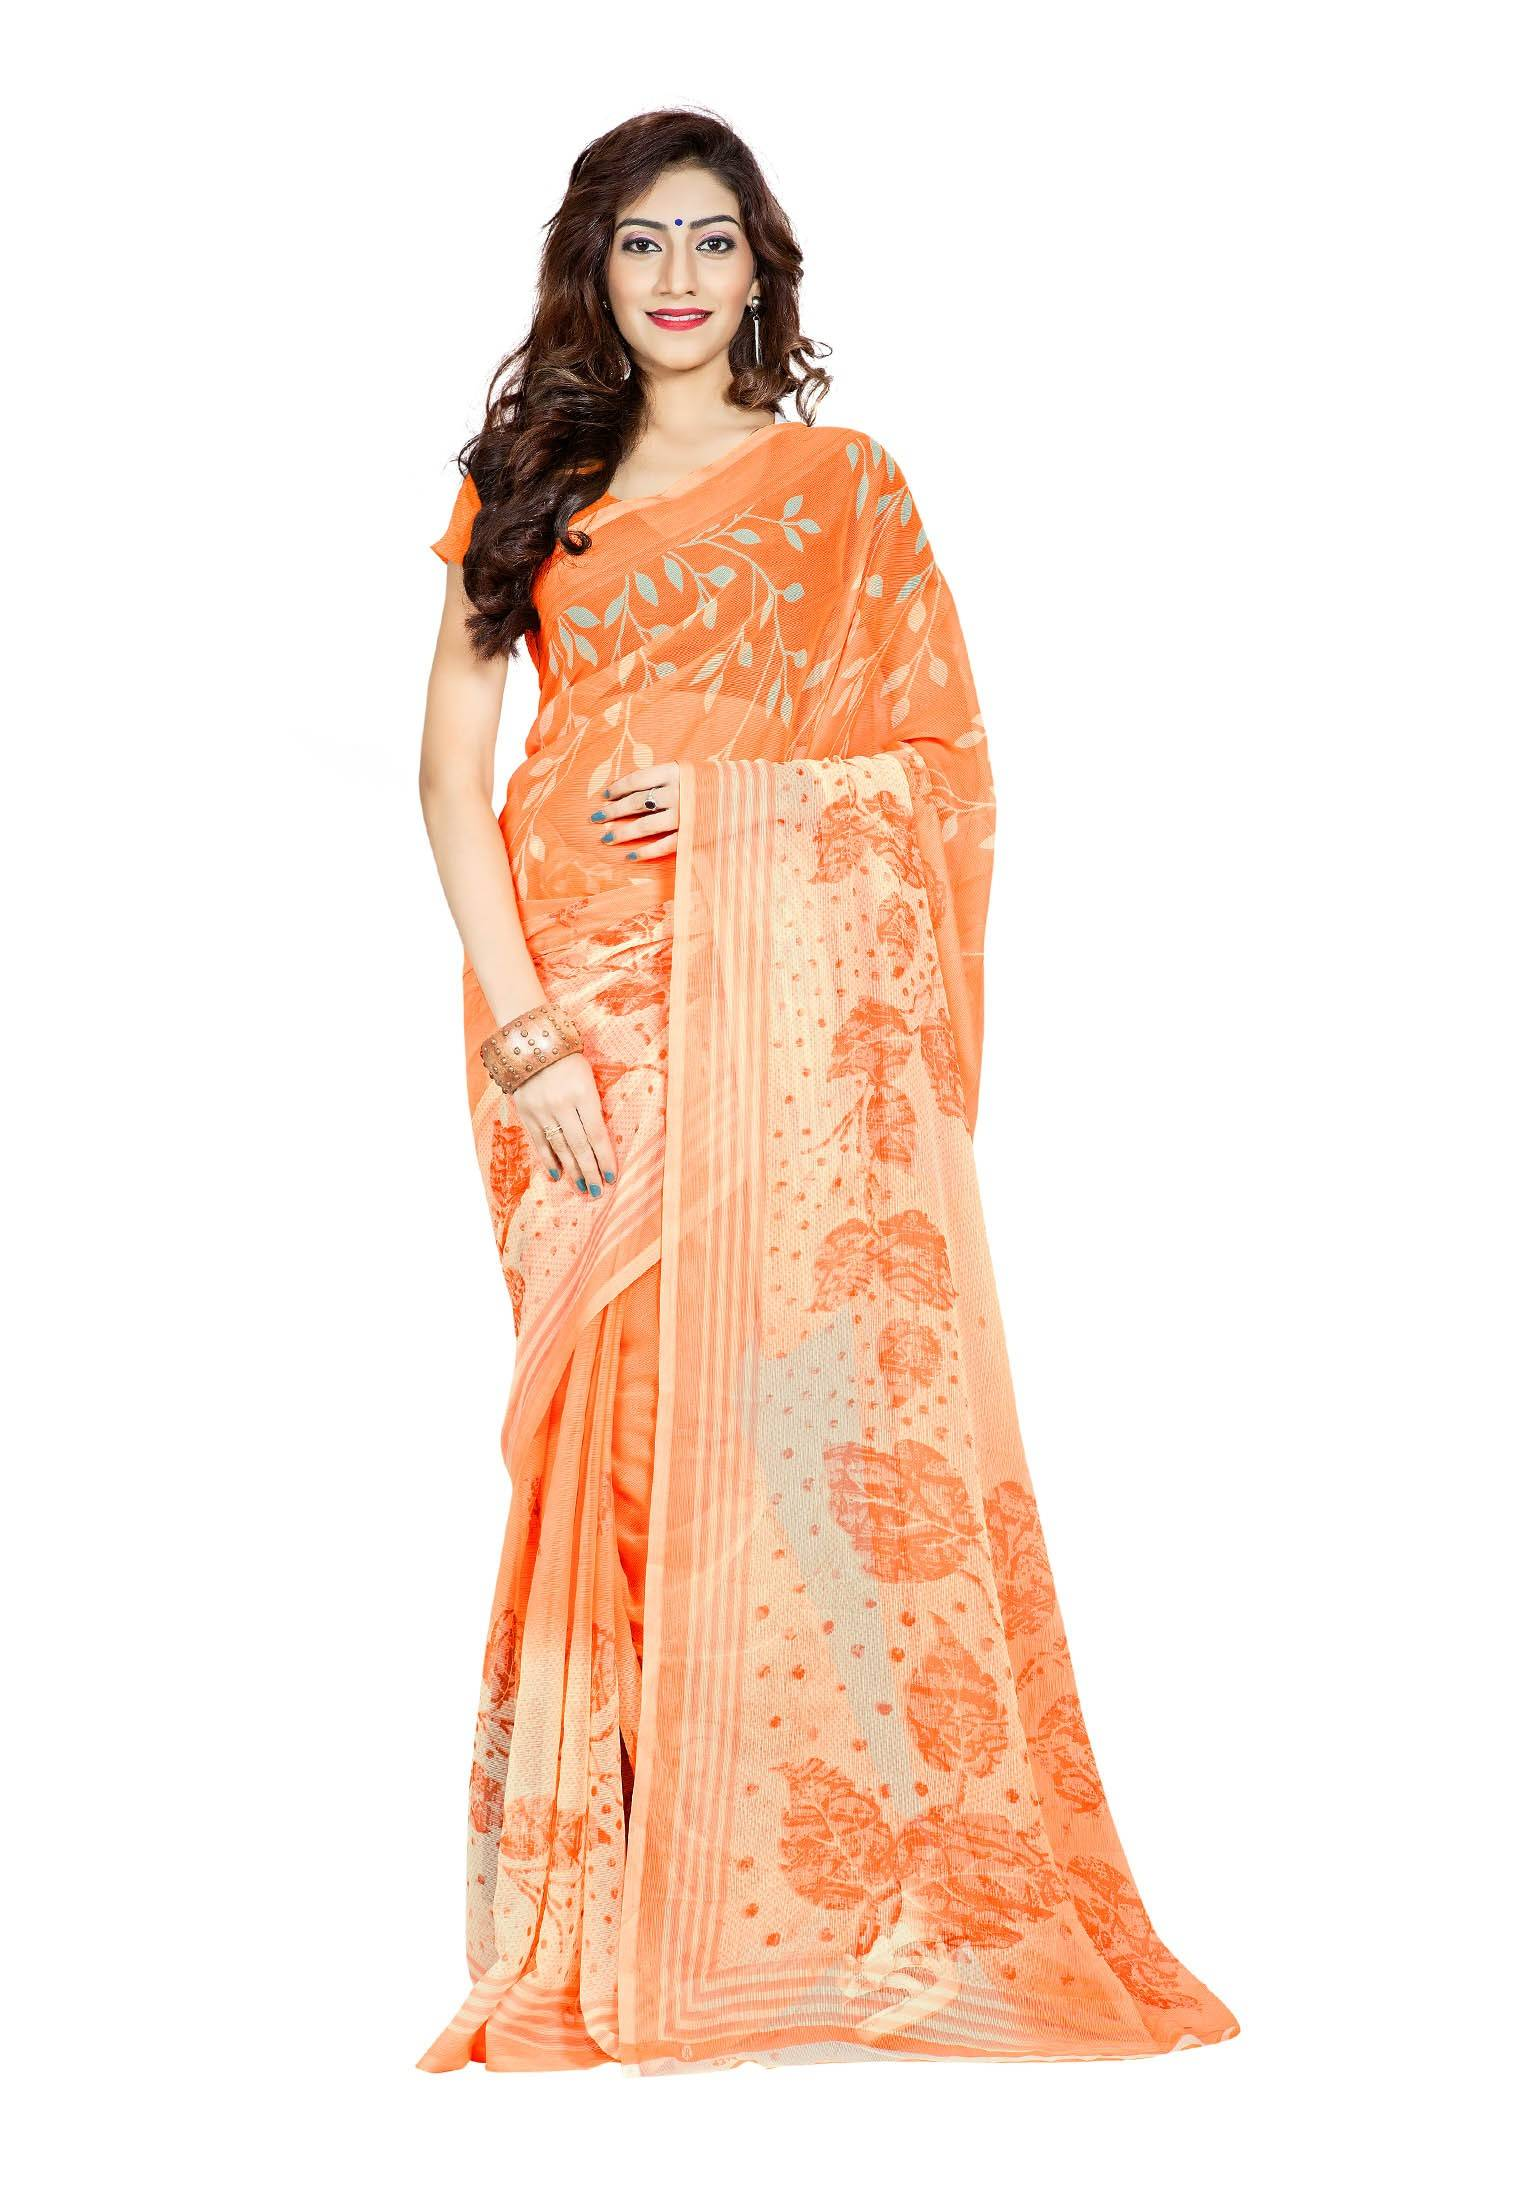 Ambaji Casual Wear Orange Colored Printed Chiffon Saree/Sari